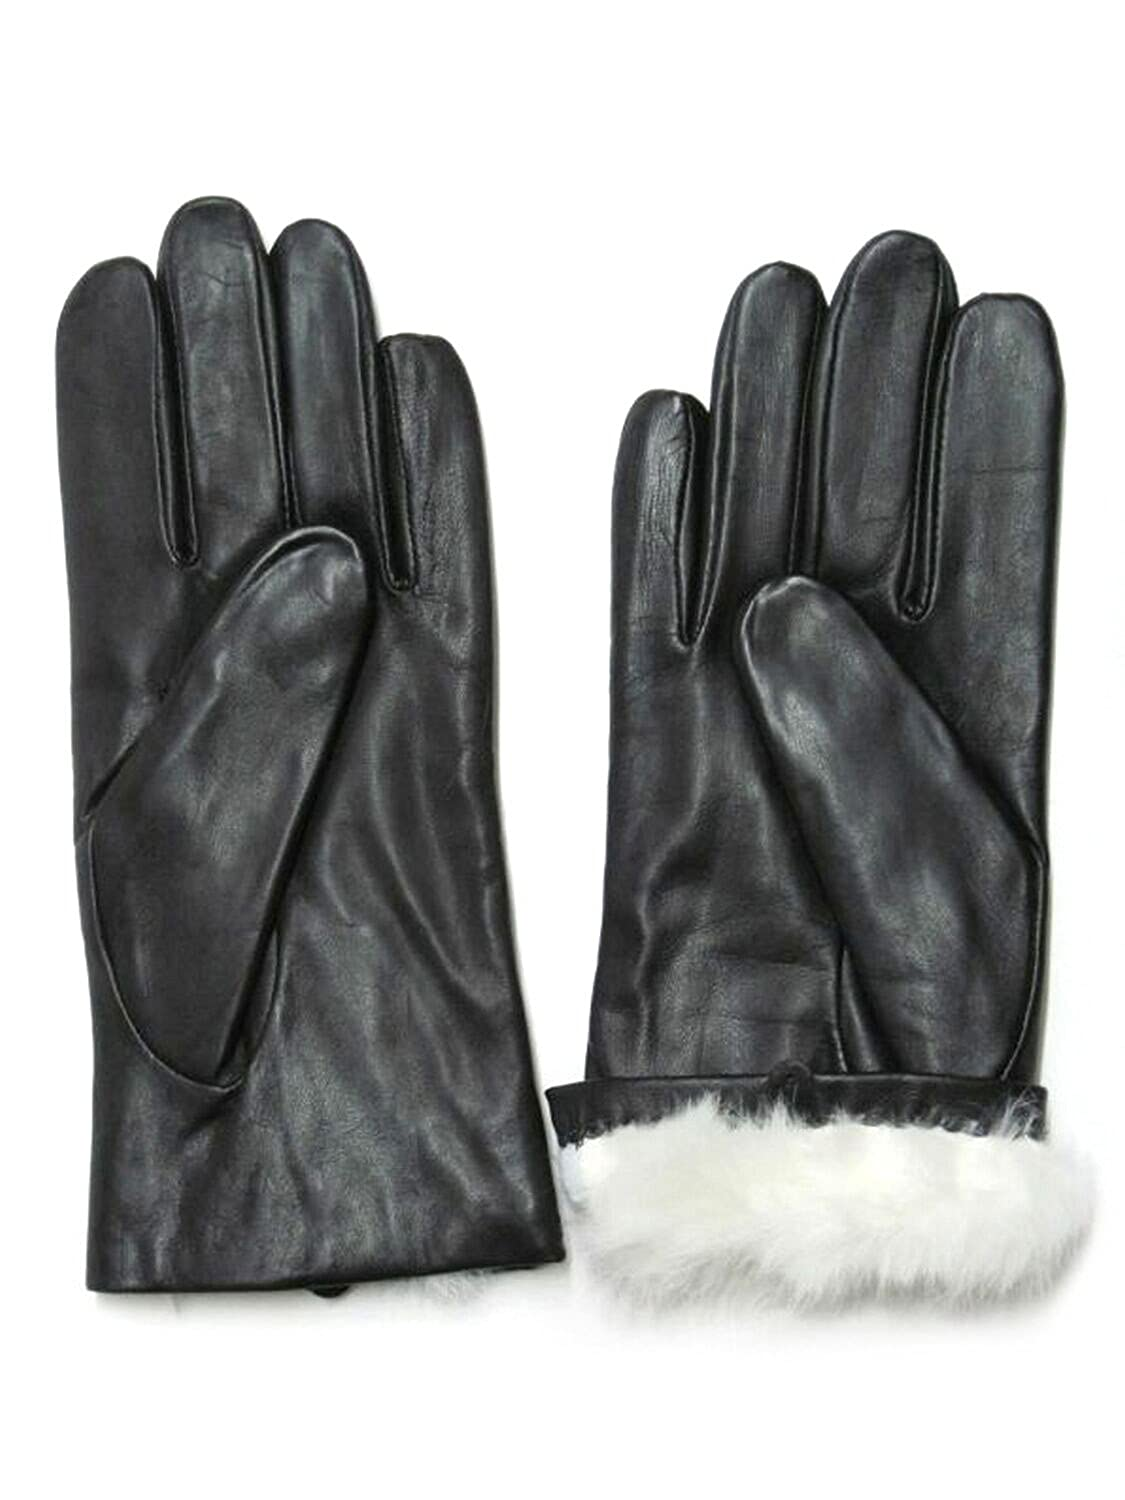 Women's Affordable Black Napa Leather Rabbit Fur-Lined Gloves